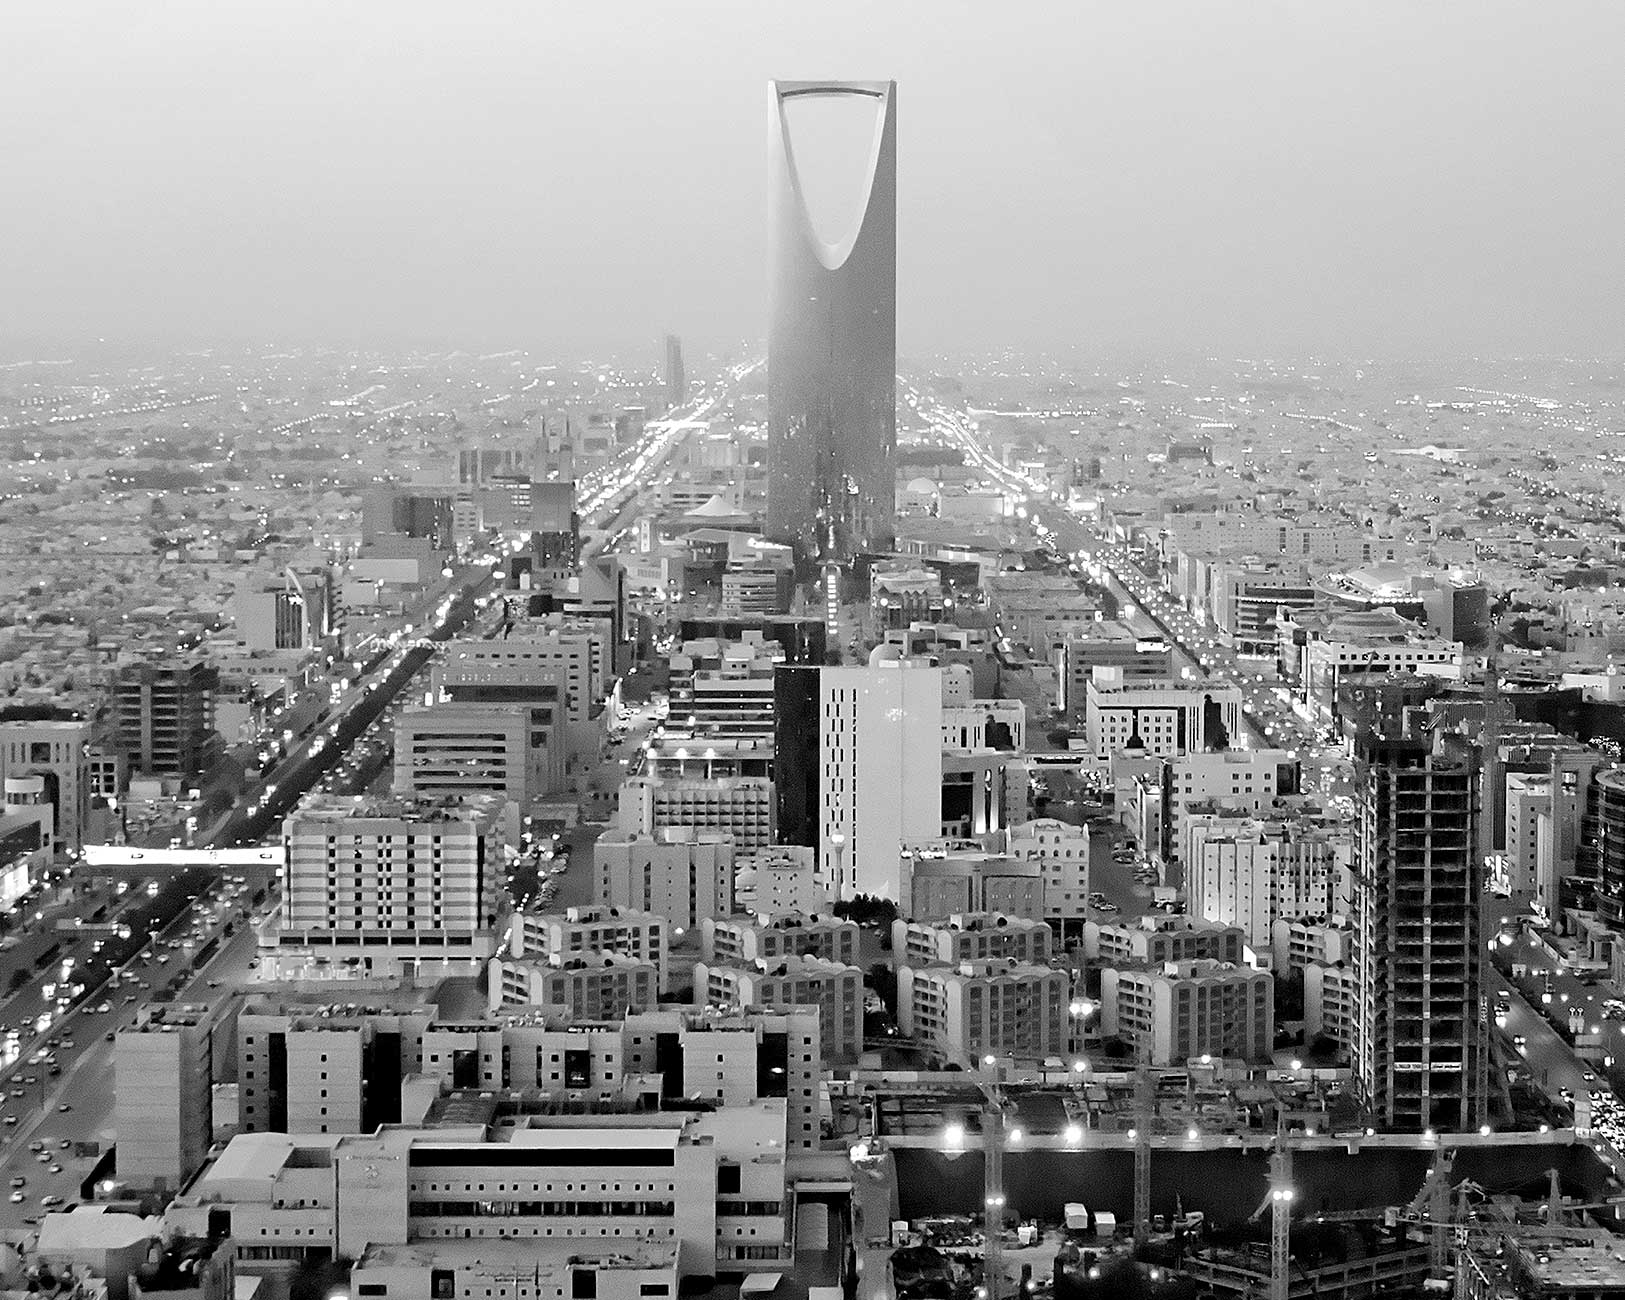 Black & white photo of Riyadh